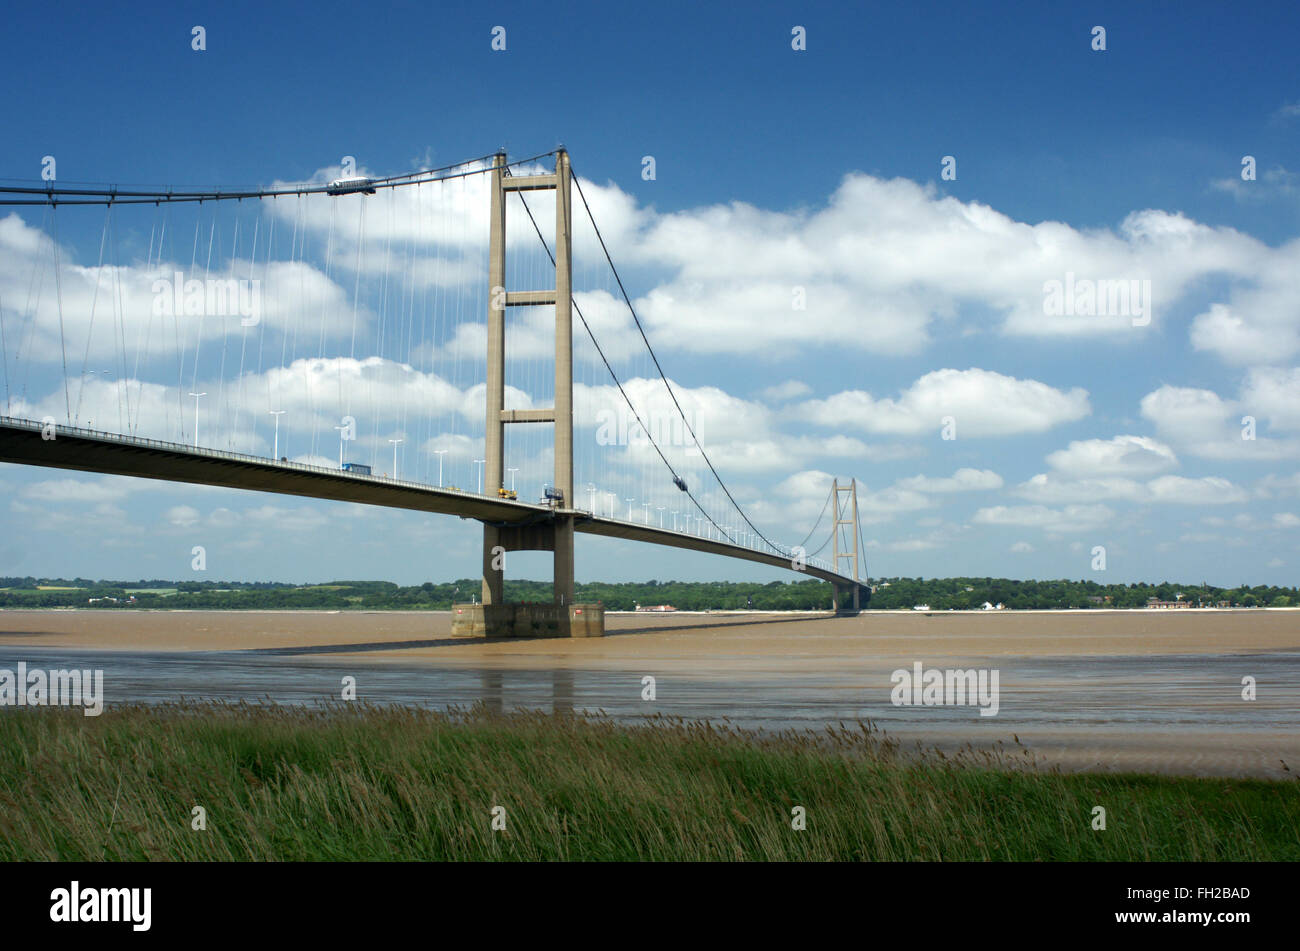 Humber Bridge in landscape format looking North West from South bank of the River Humber - Stock Image